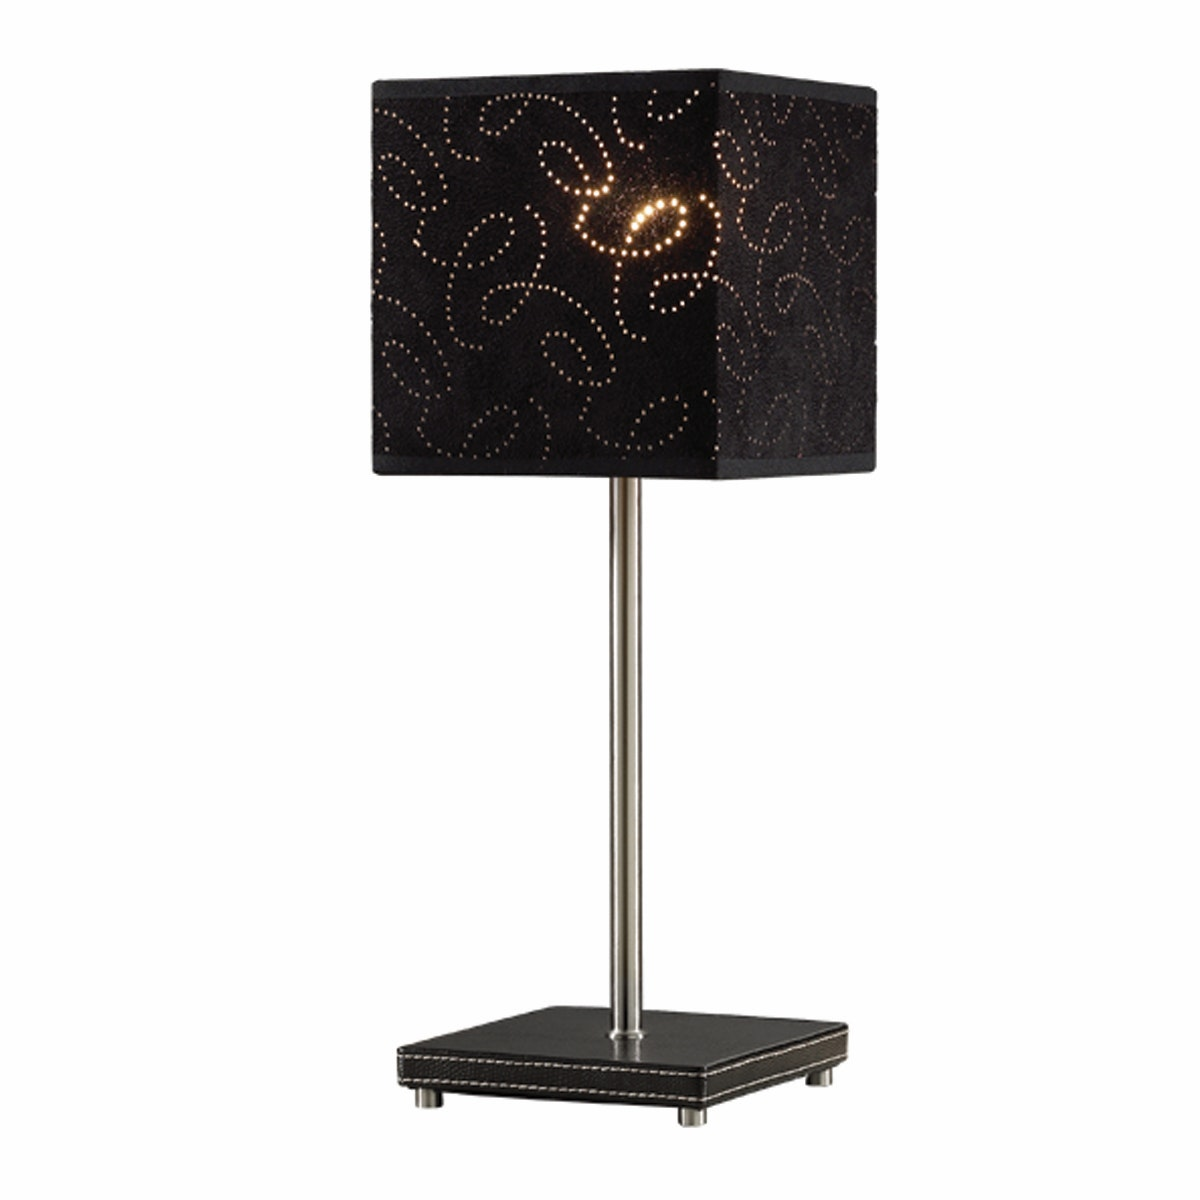 3+Projects Lampu Meja Table Lamp Black Pattern Fabric Shade 3+DL-PD1173-BL-VG